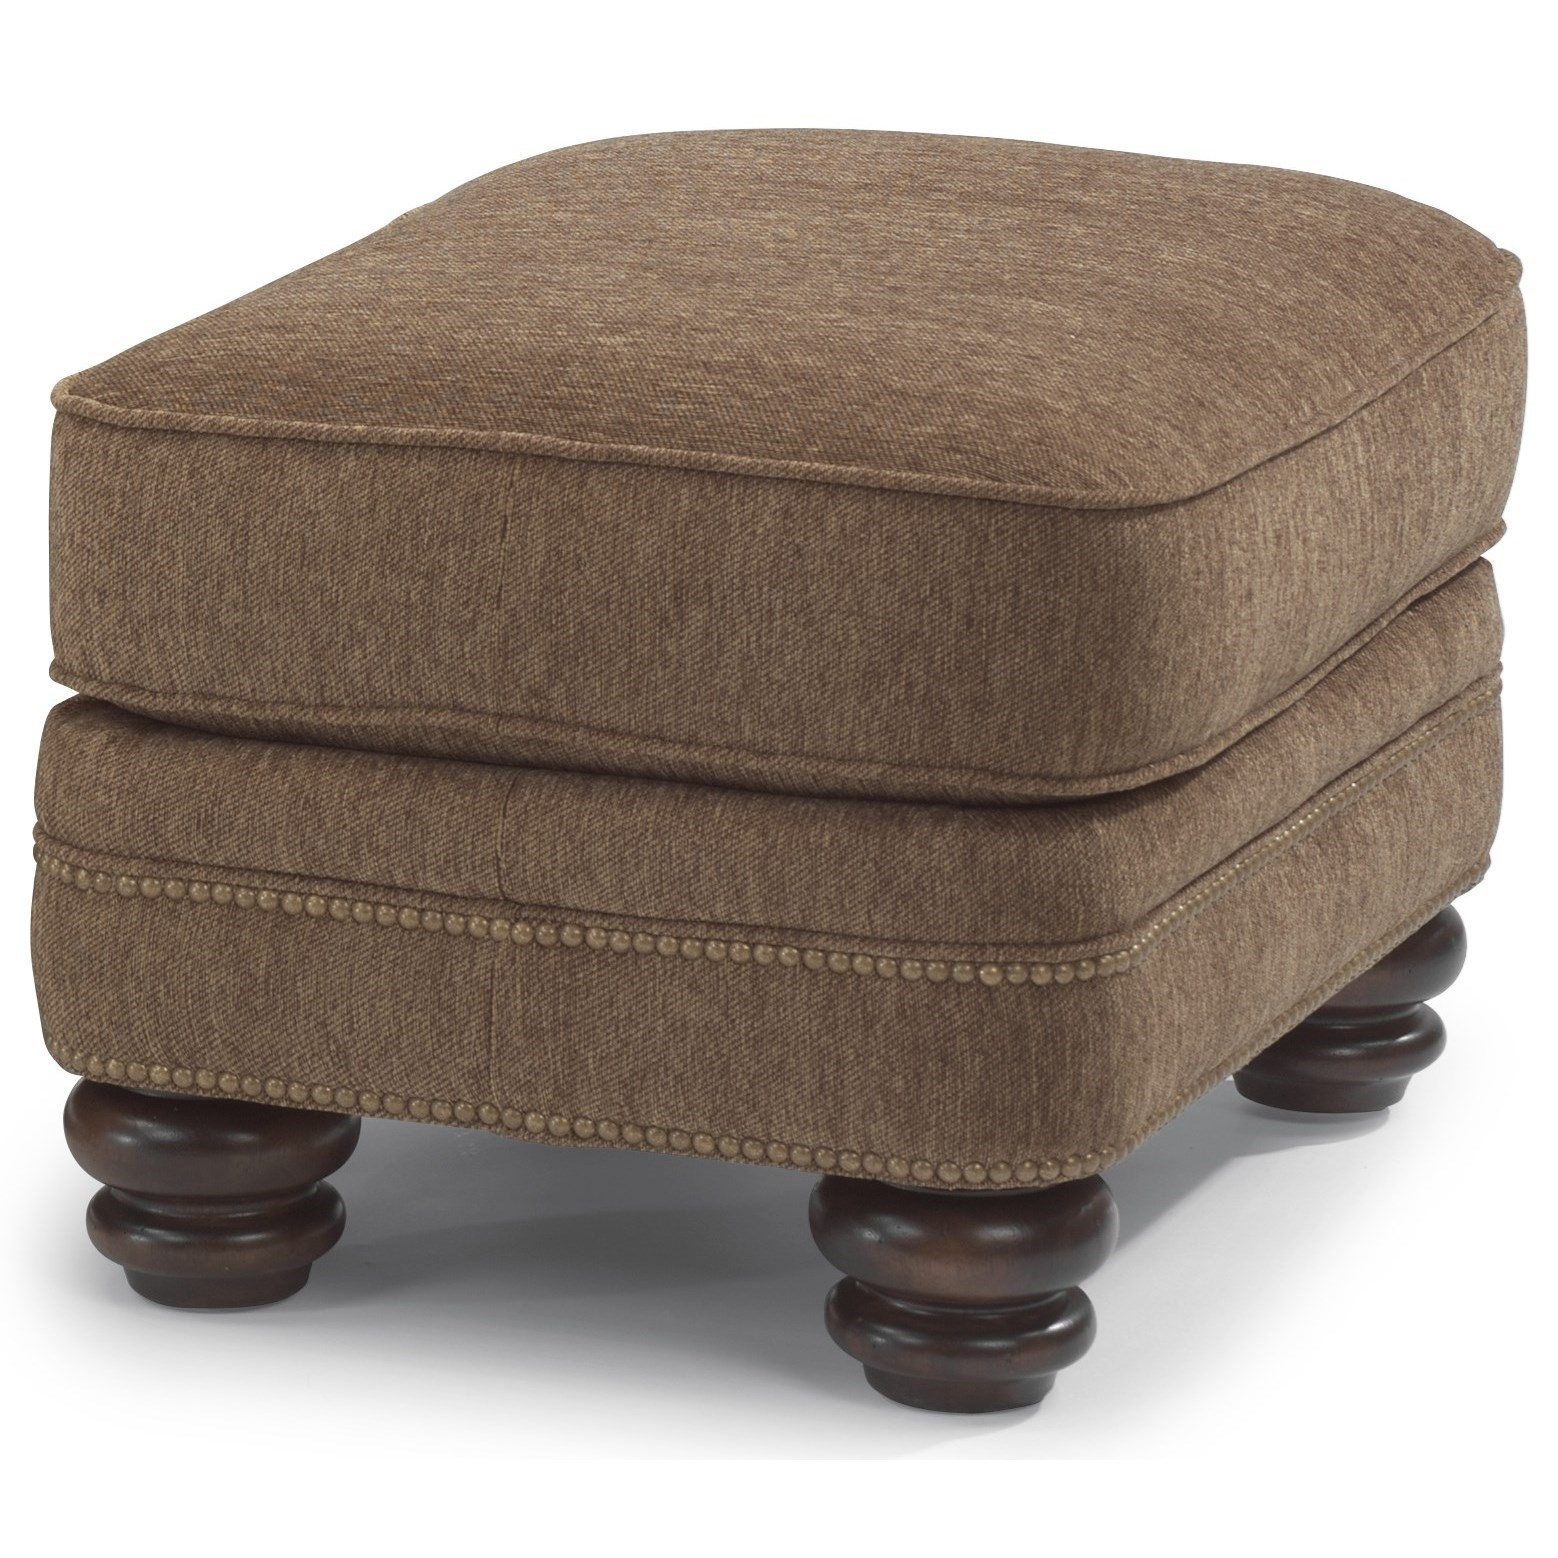 Bay Bridge Traditional Ottoman by Flexsteel at Jordan's Home Furnishings